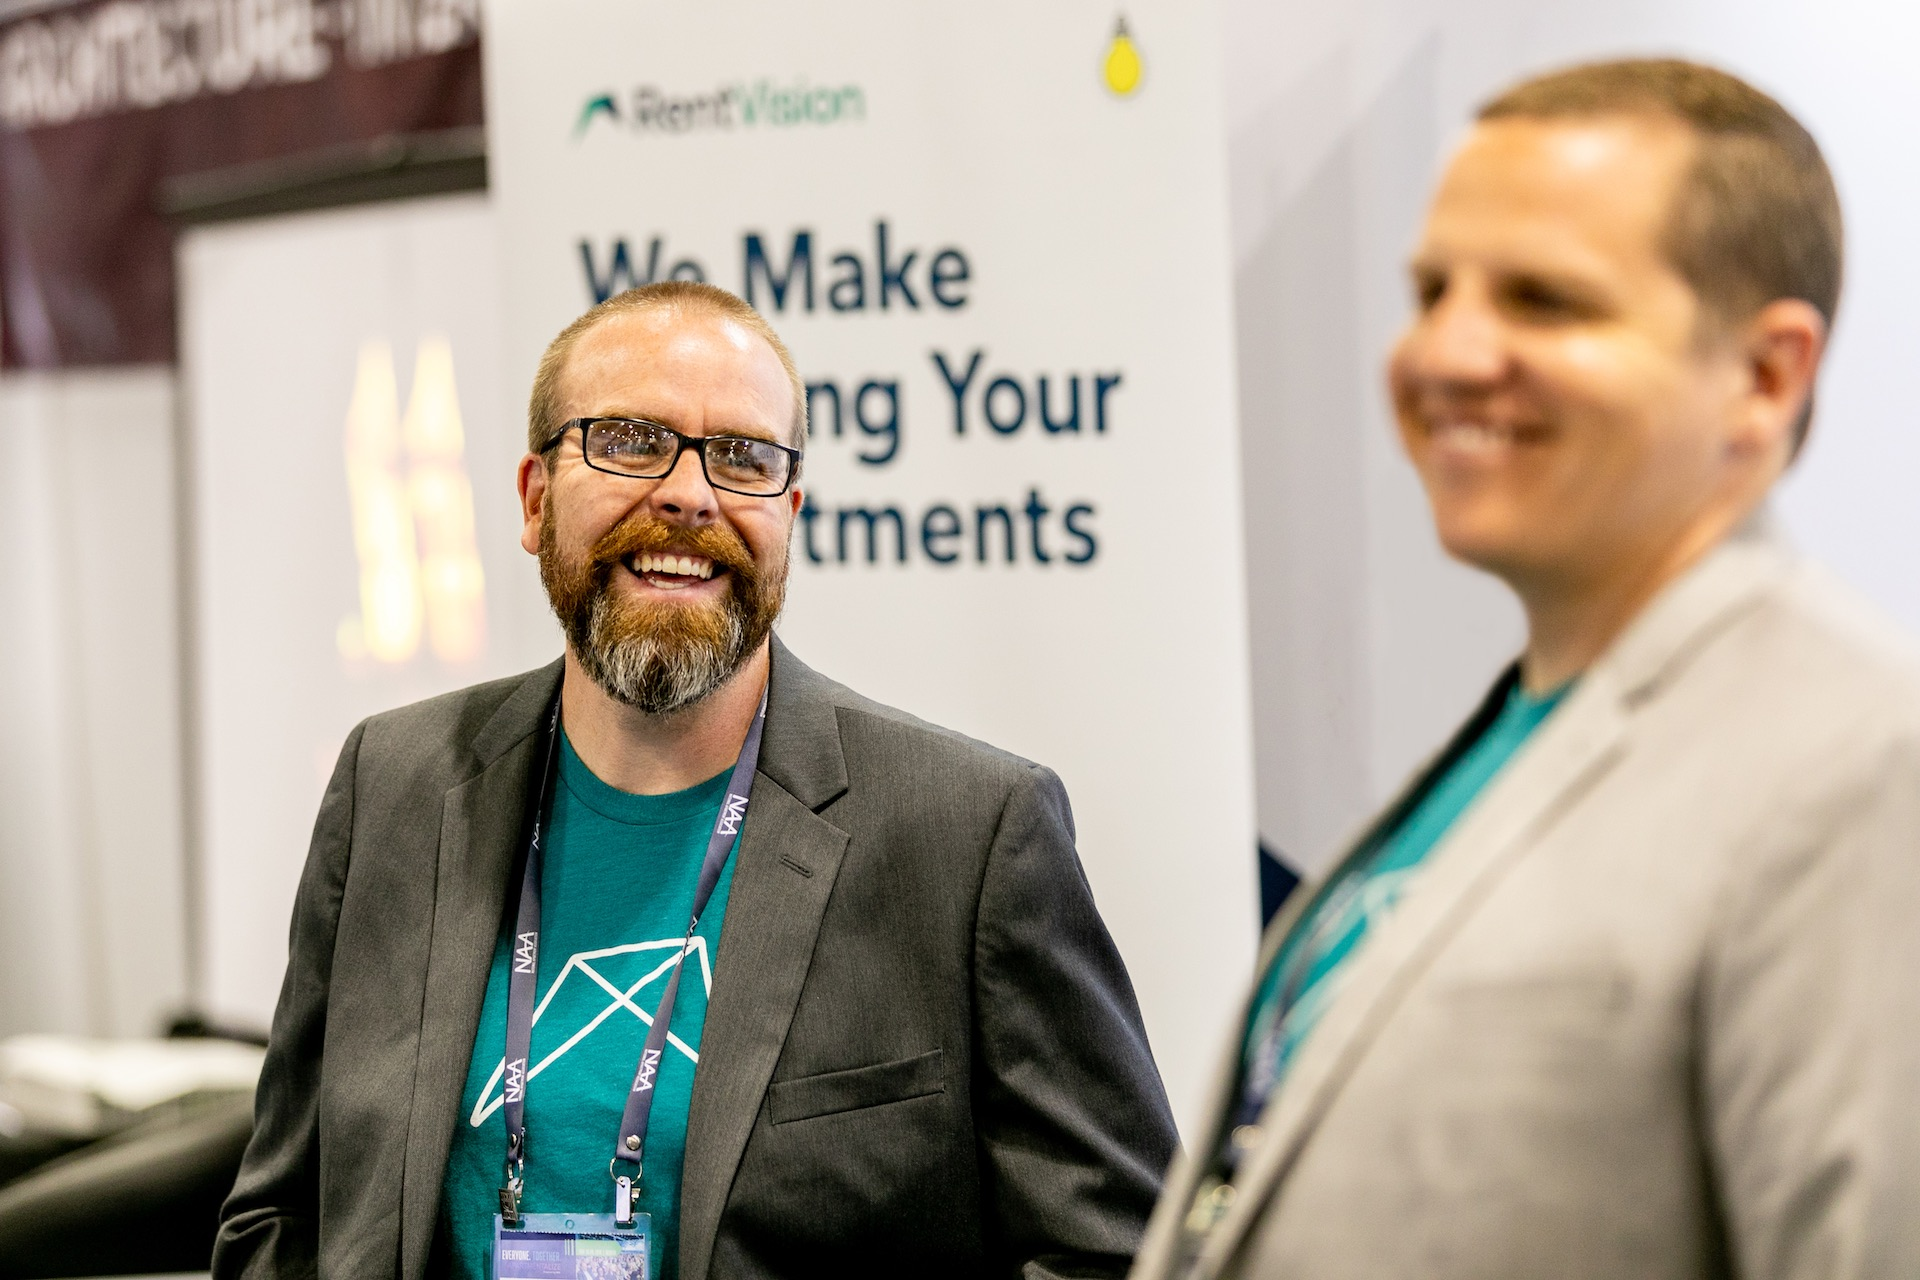 Two men wearing t-shirts with RentVision logo smiling in trade show booth.